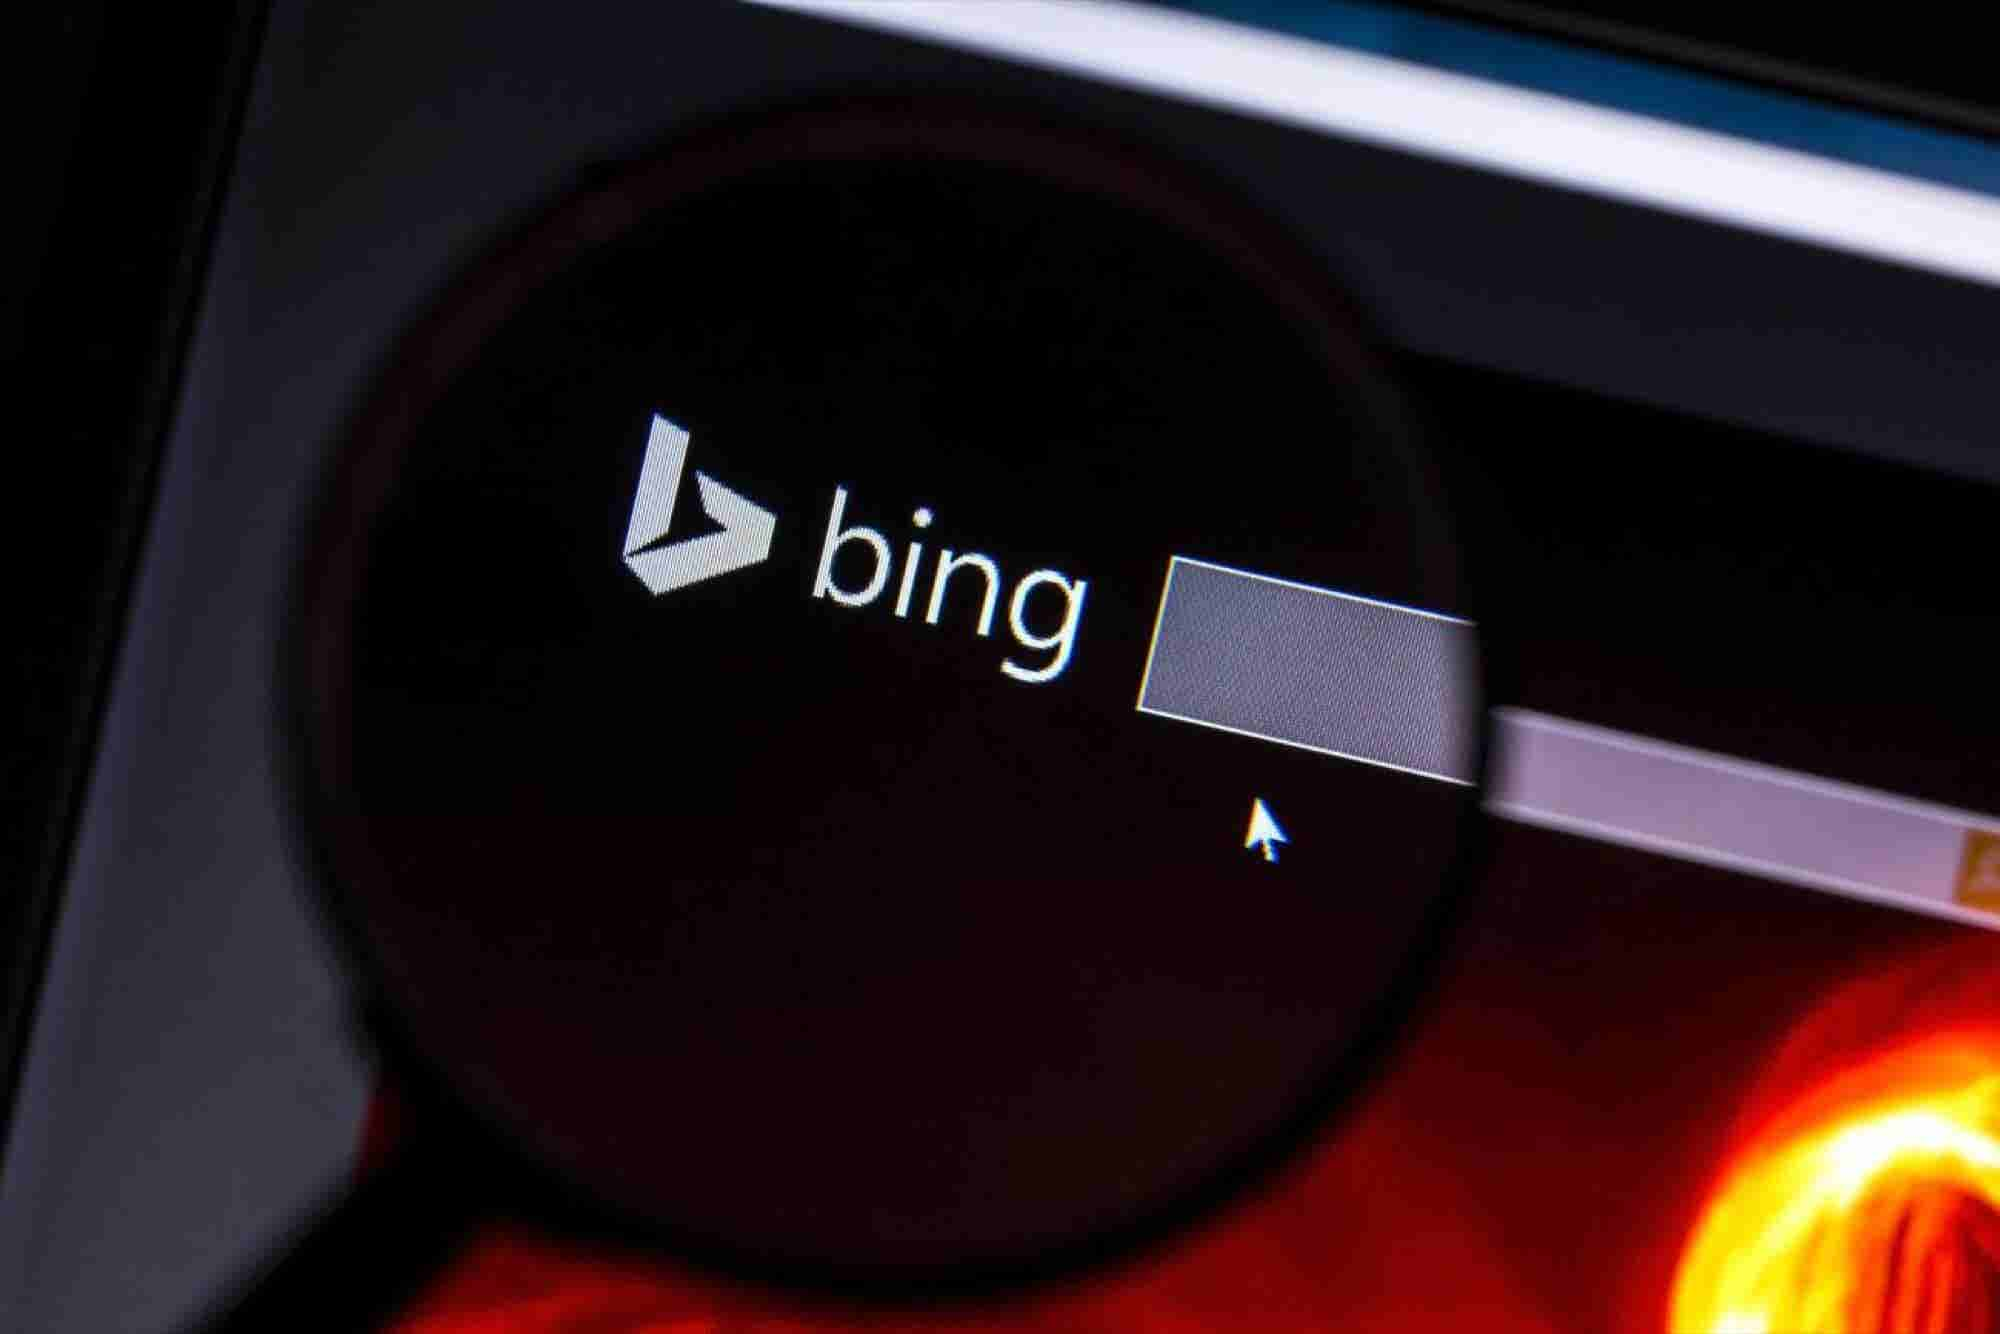 7 Reasons European Businesses Should Advertise on Bing